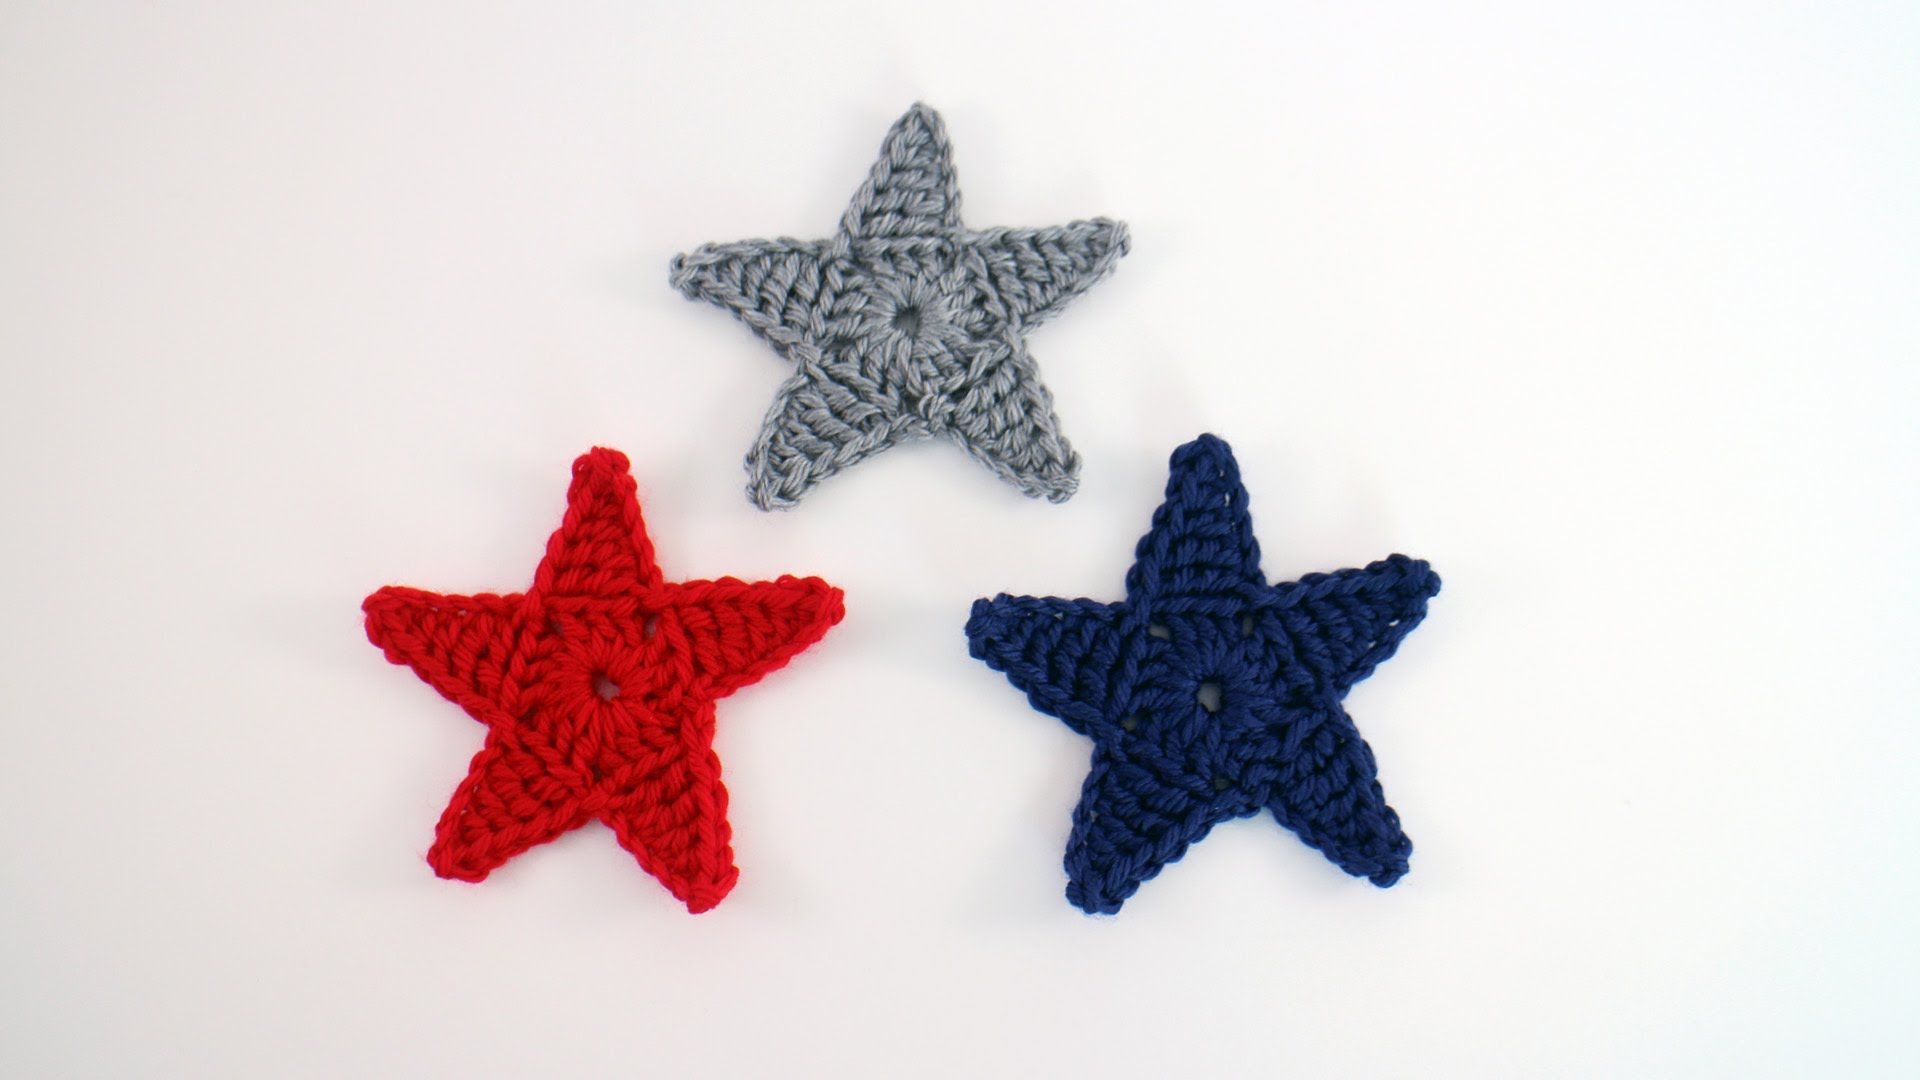 Crochet Star Applique | Handcrafts and shitty things | Pinterest ...